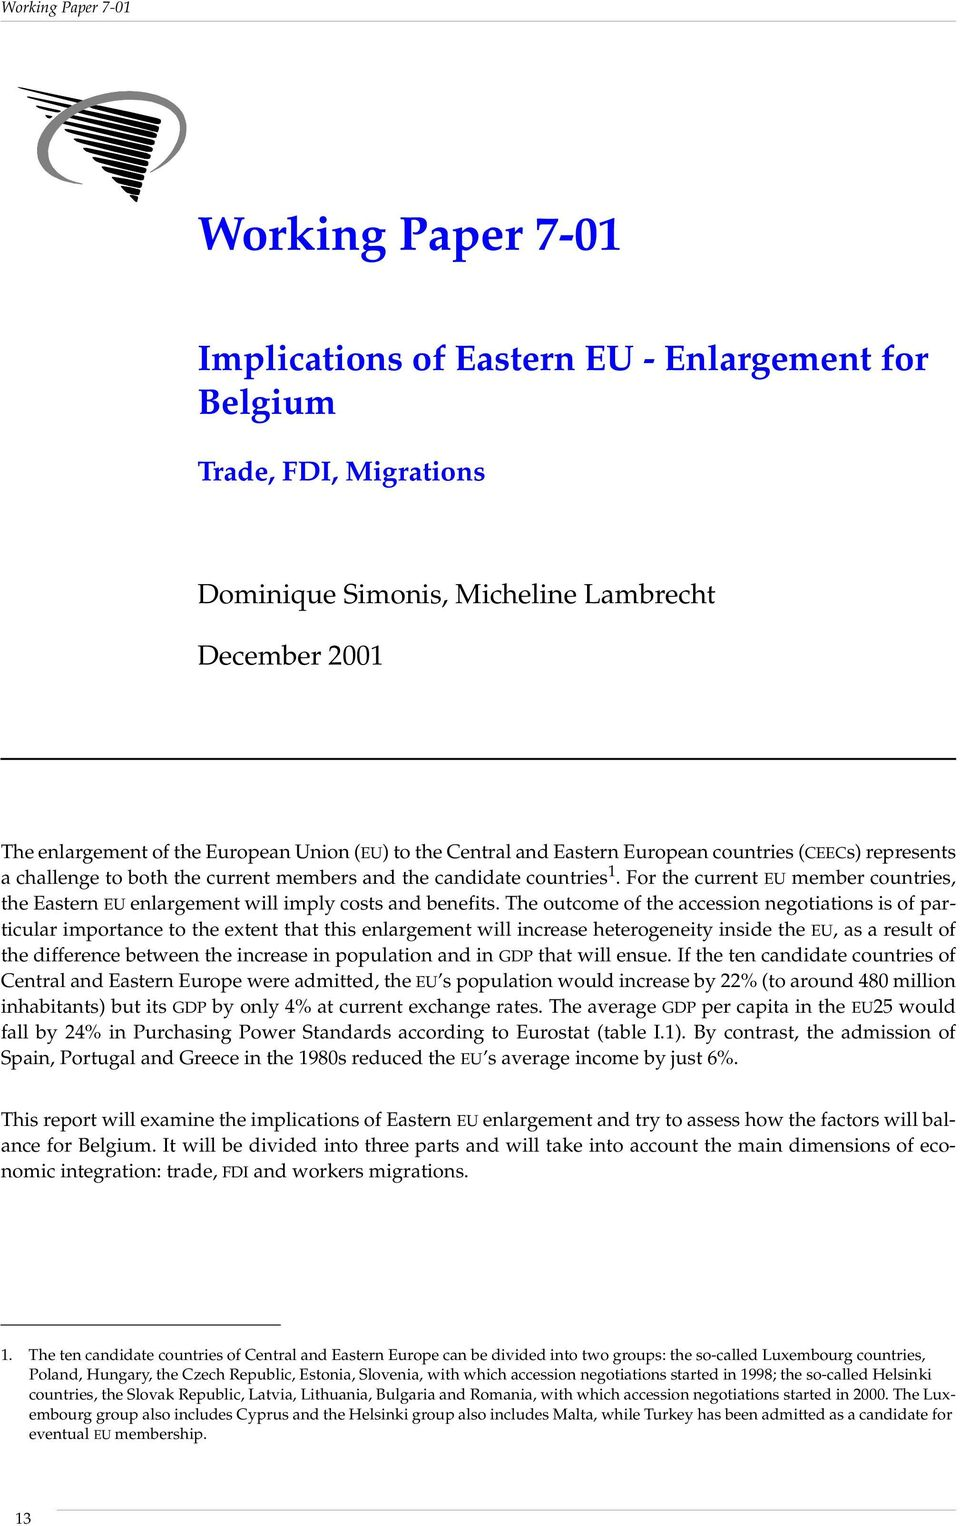 For the current EU member countries, the Eastern EU enlargement will imply costs and benefits.